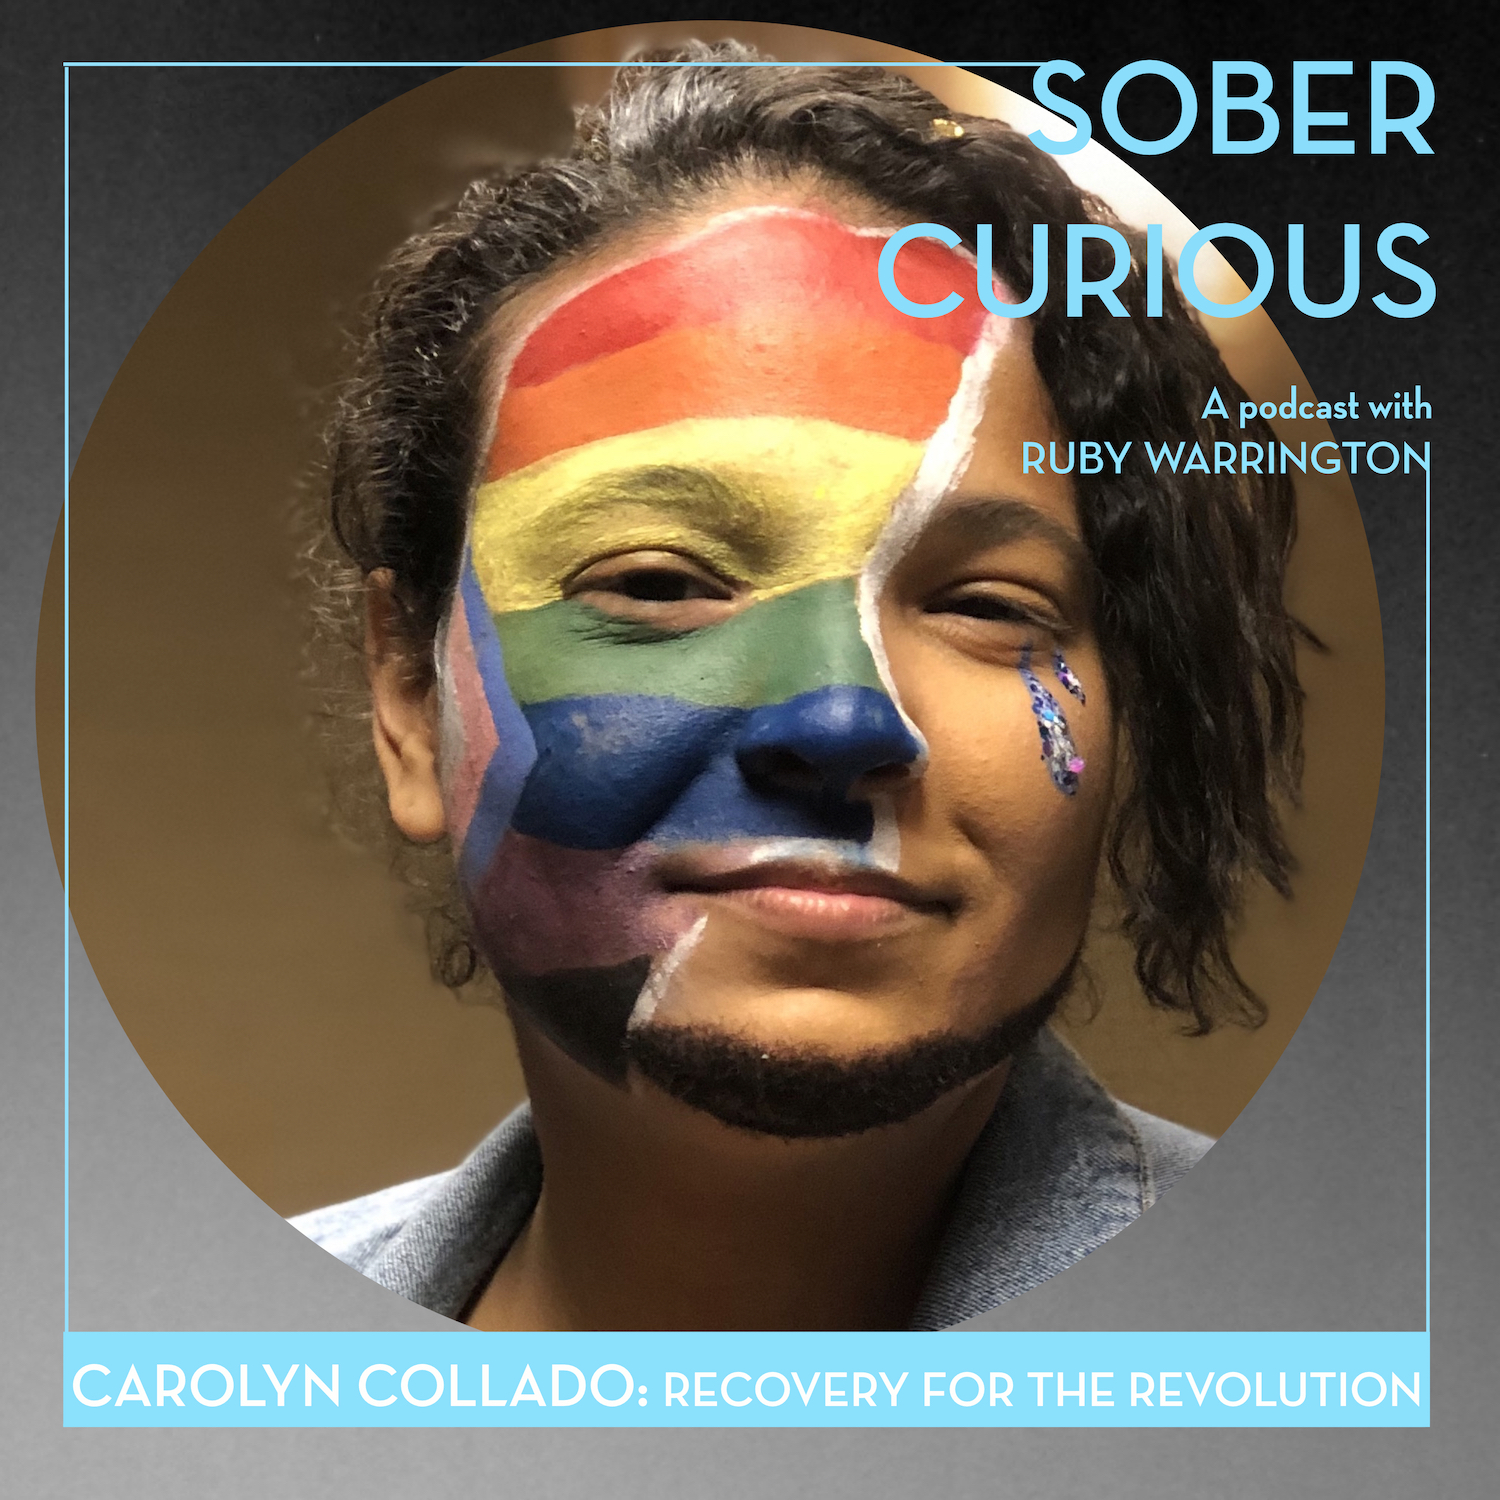 Sober Curious podcast Recovery for the Revolution Carolyn Collado